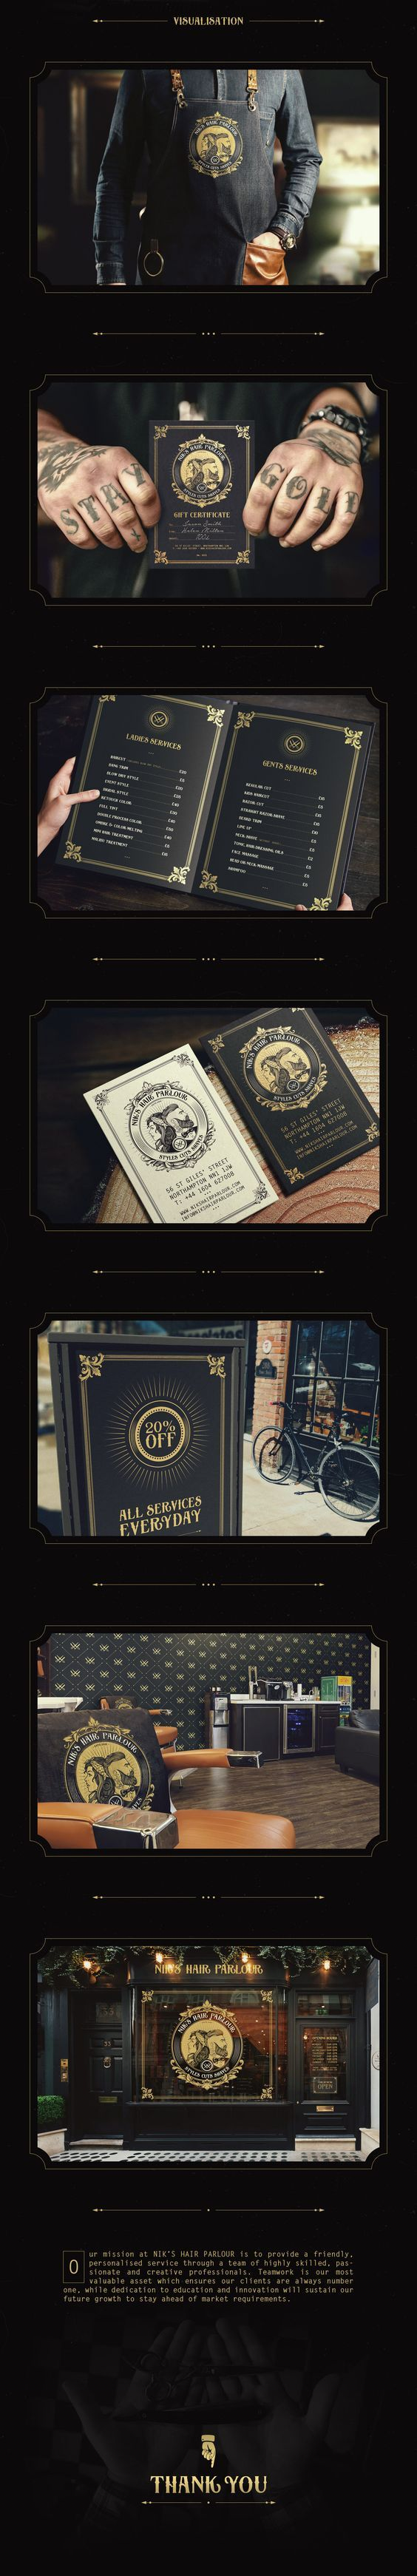 ✂ NIK'S HAIR PARLOUR is a vintage modern hair salon for both ladies and gents, located in the town centre of Northampton. Barbershop, barber shop, barber, hair salon, parlour, beard, moustache, logo, sign, badge, vintage, retro, hairdressing salon, brand identiy, mockup.: